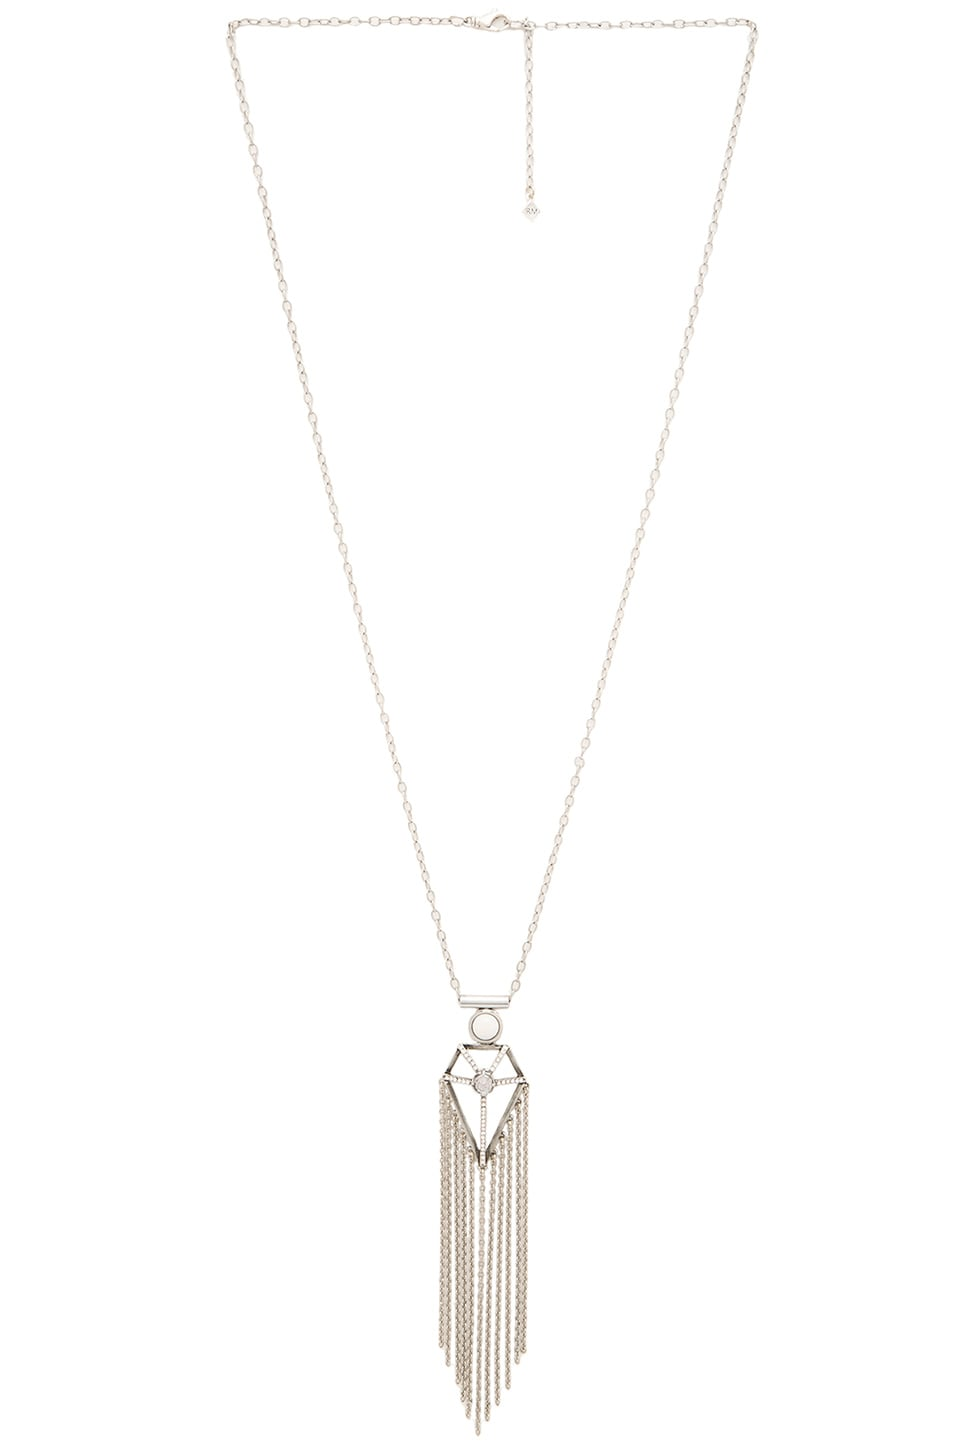 Rebecca Minkoff Boho Fringe Necklace in Silver